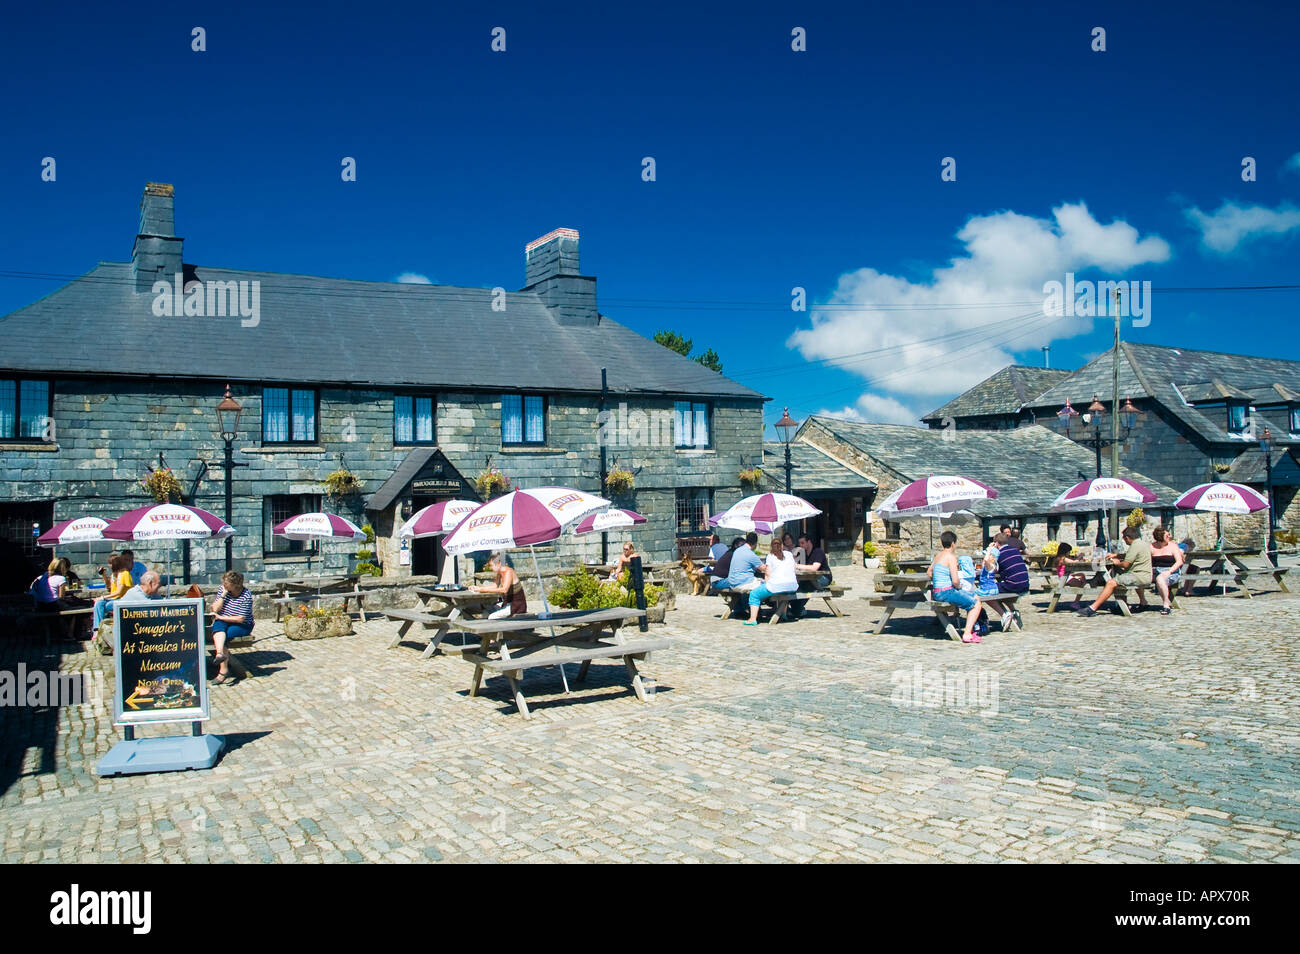 'Jamaica Inn' hotel Bodmin Moor Cornwall. An old coaching Inn made famous by Daphne du Maurier in her novel - Stock Image